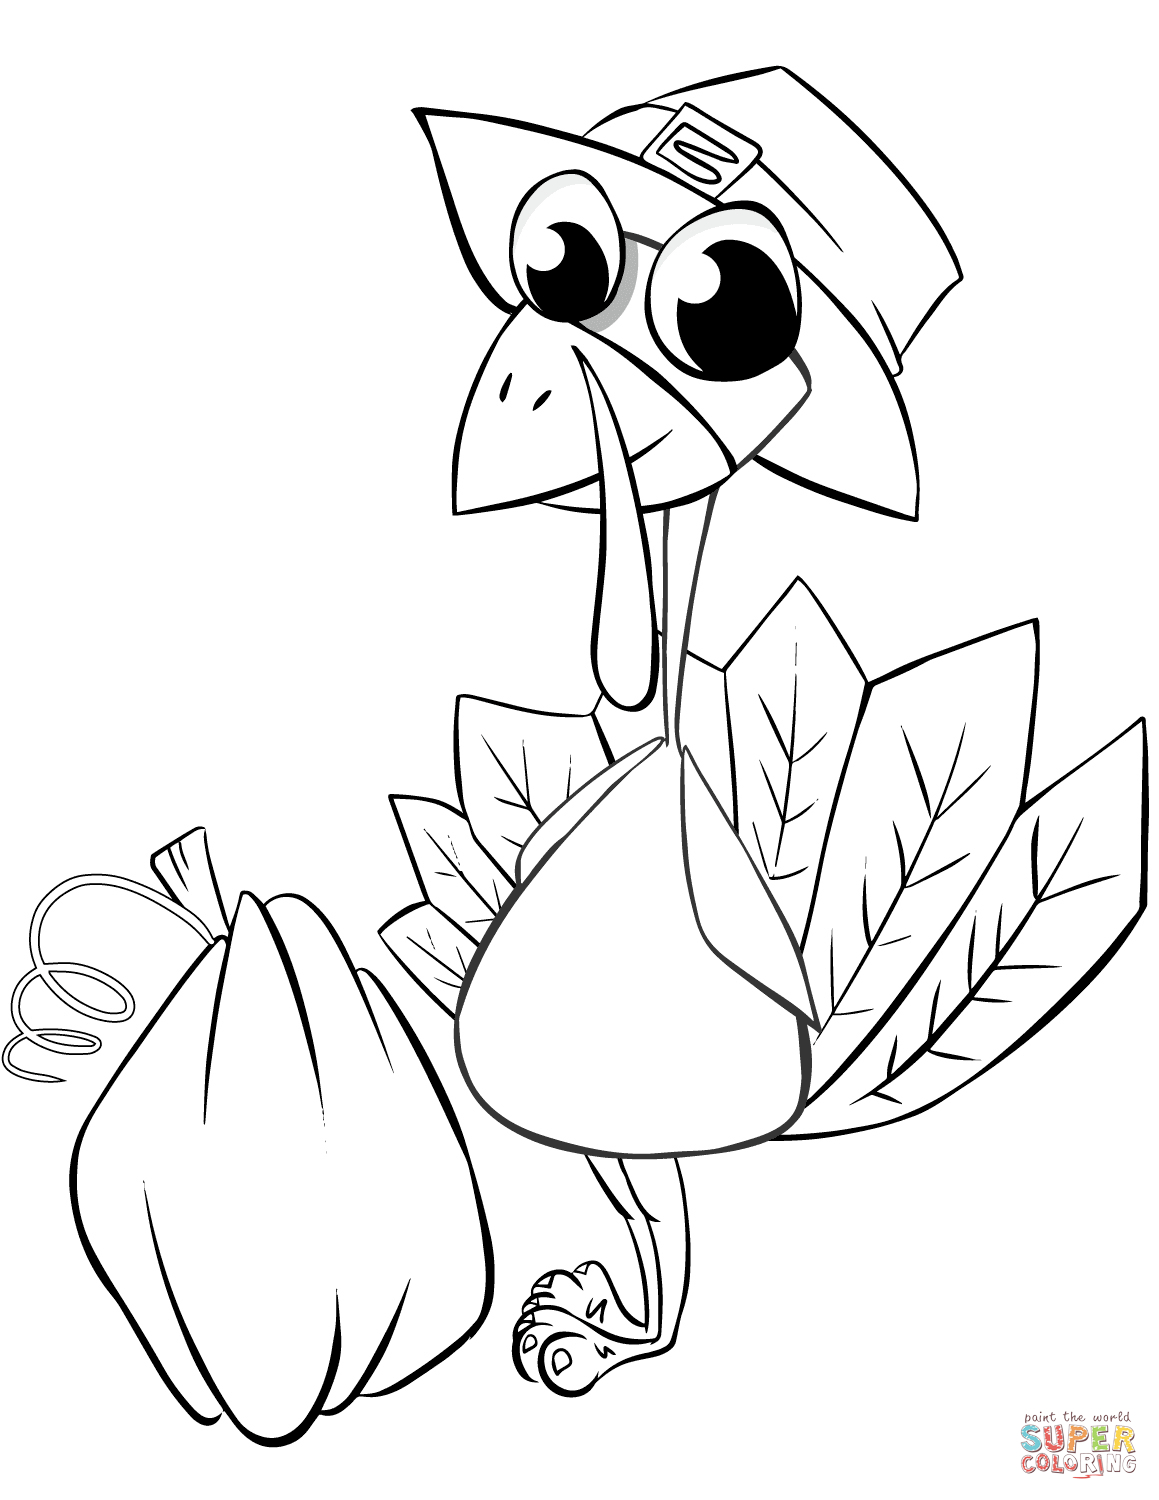 Turkey Coloring Pages | Free Coloring Pages - Free Printable Pictures Of Turkeys To Color